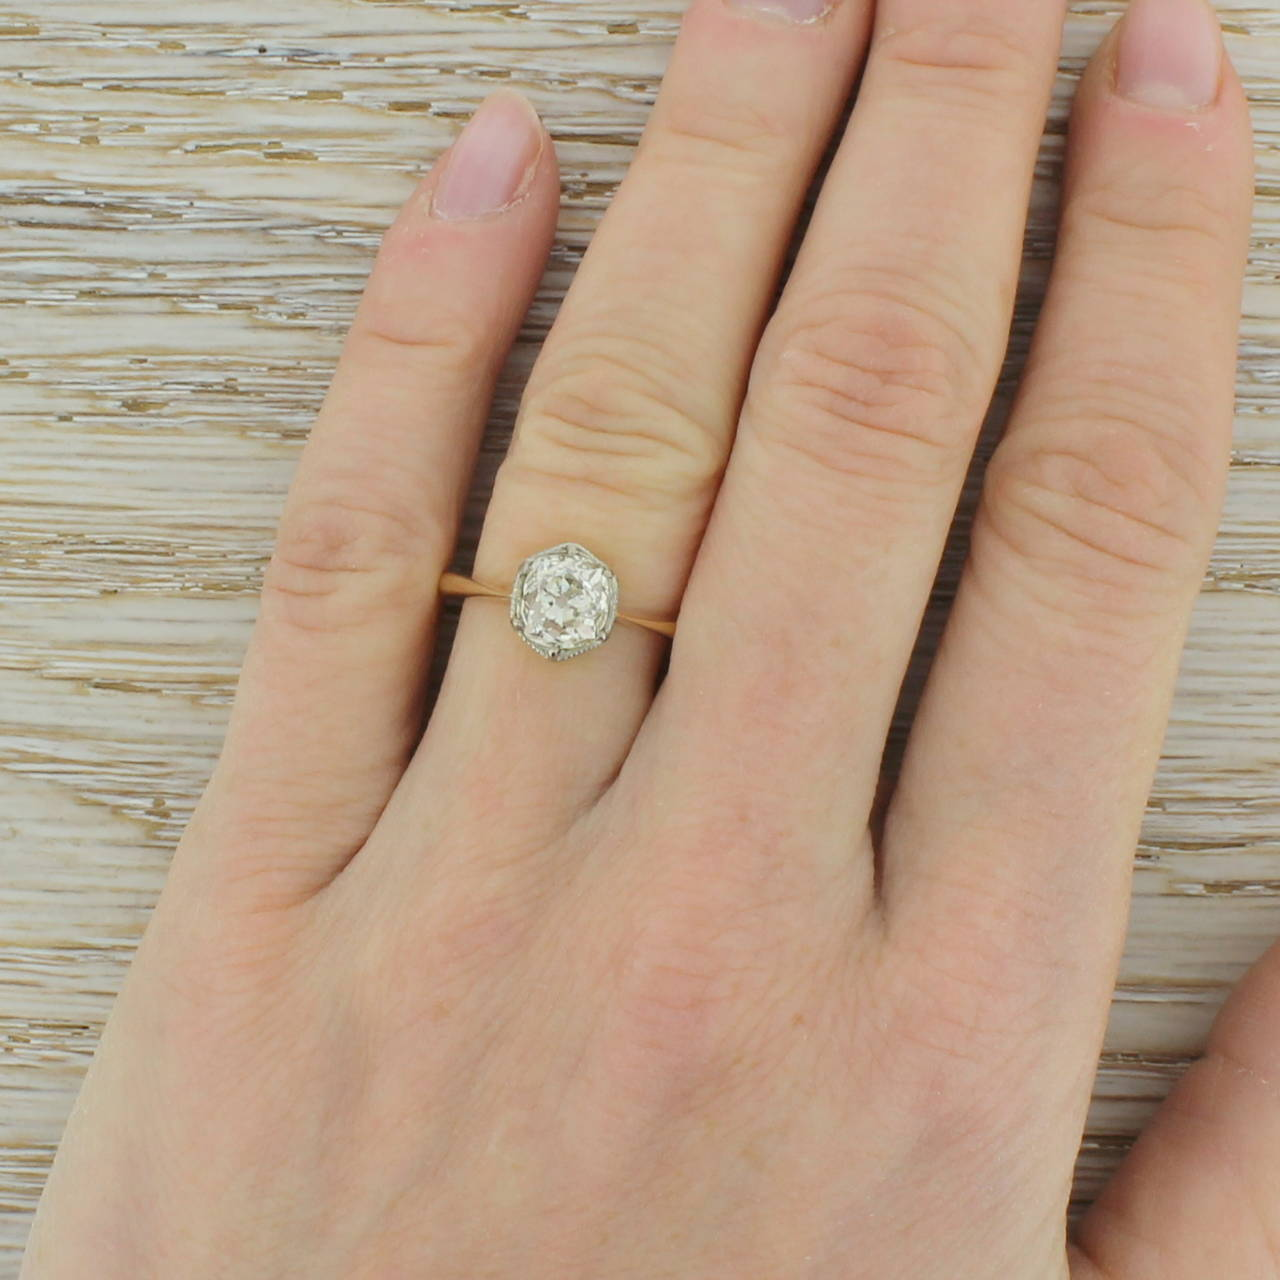 Early 20th Century 1.47 Carat Old Cut Diamond Gold Engagement Ring 5